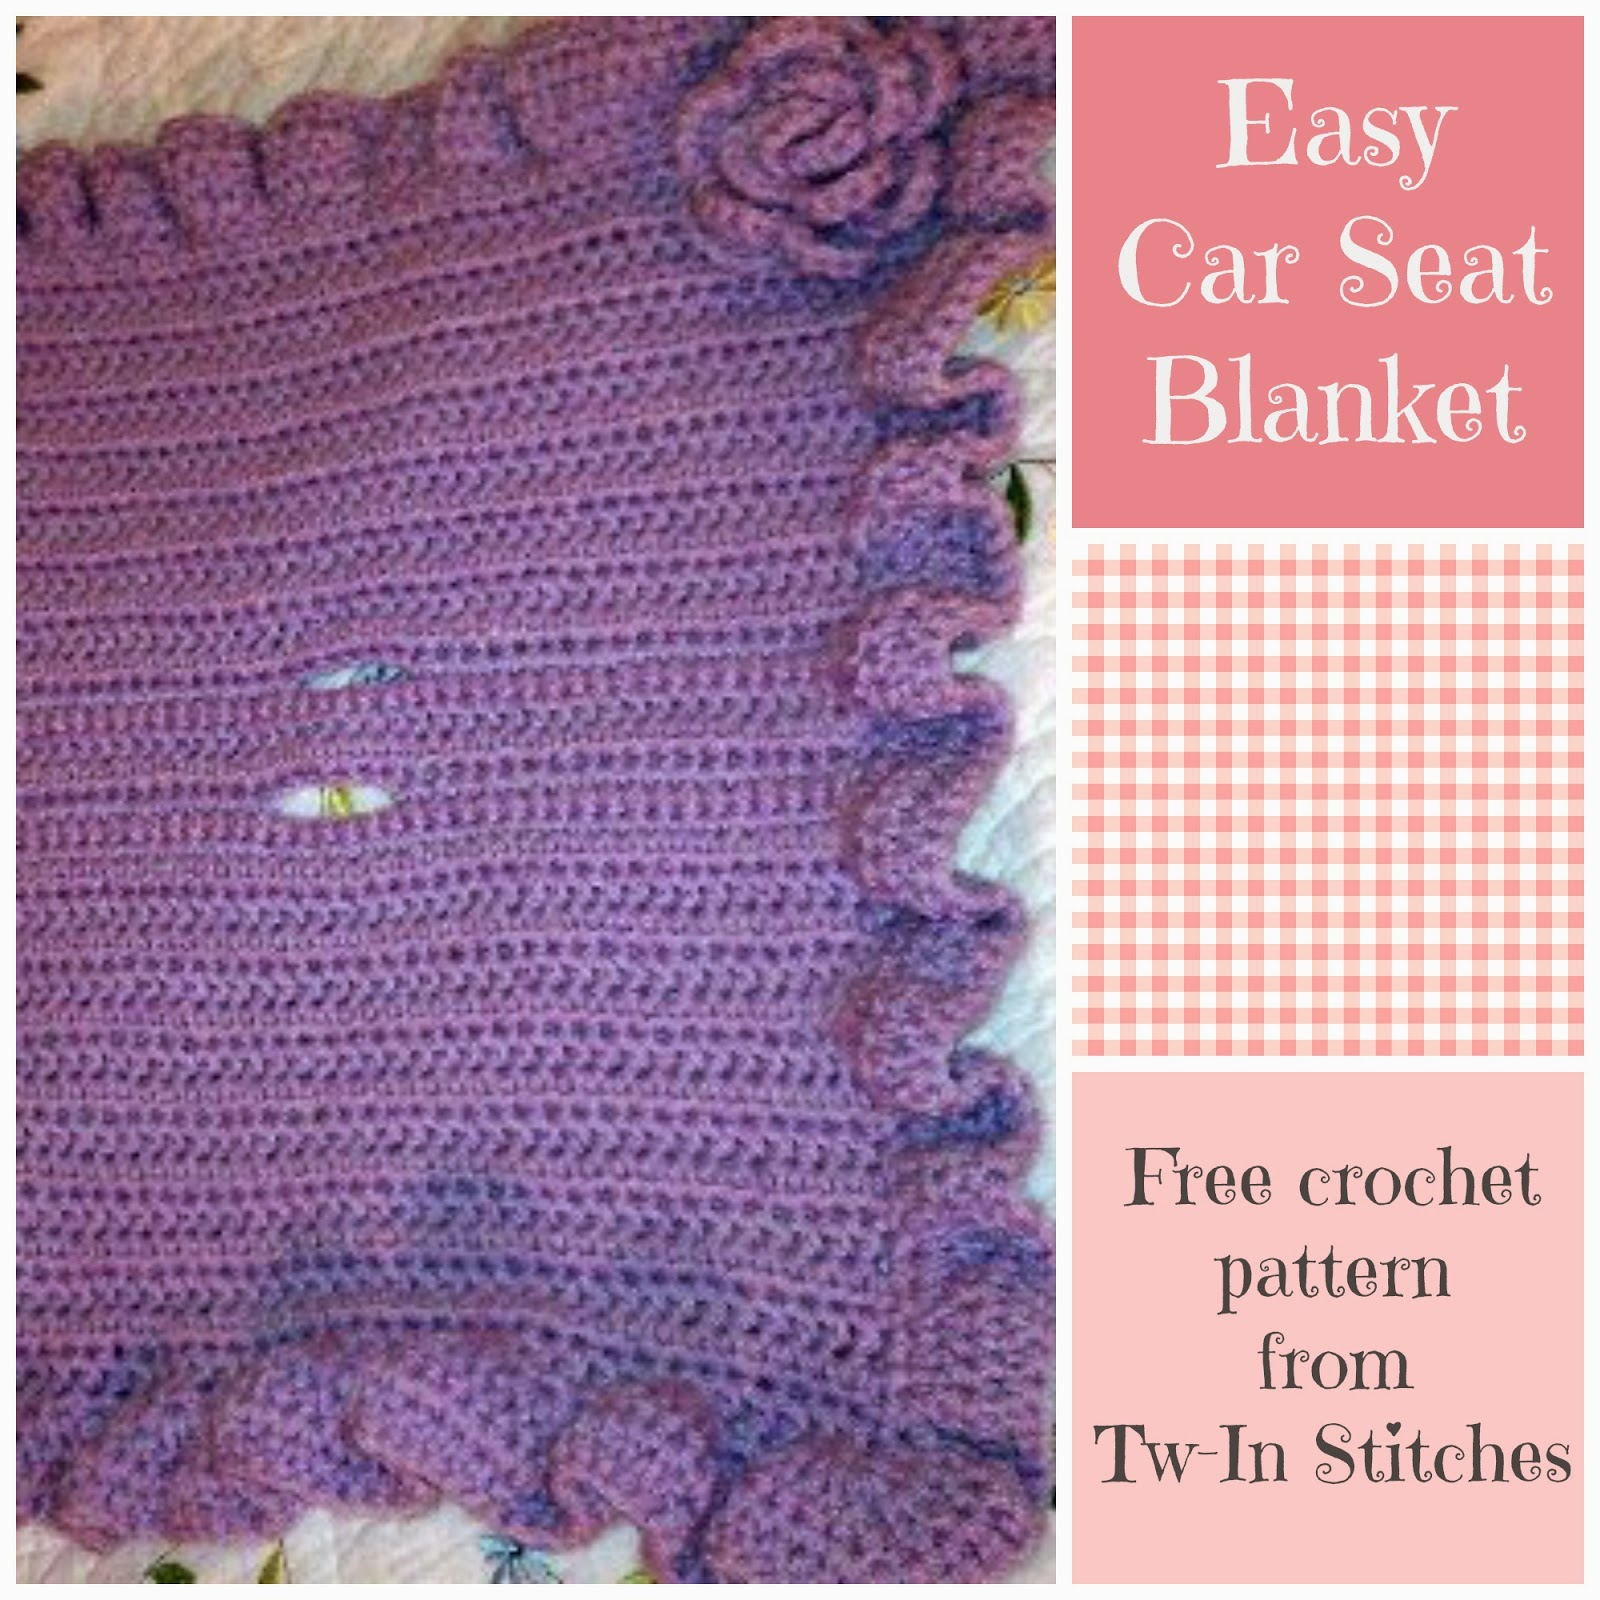 Tw-In Stitches: Easy Car Seat Blanket Pattern